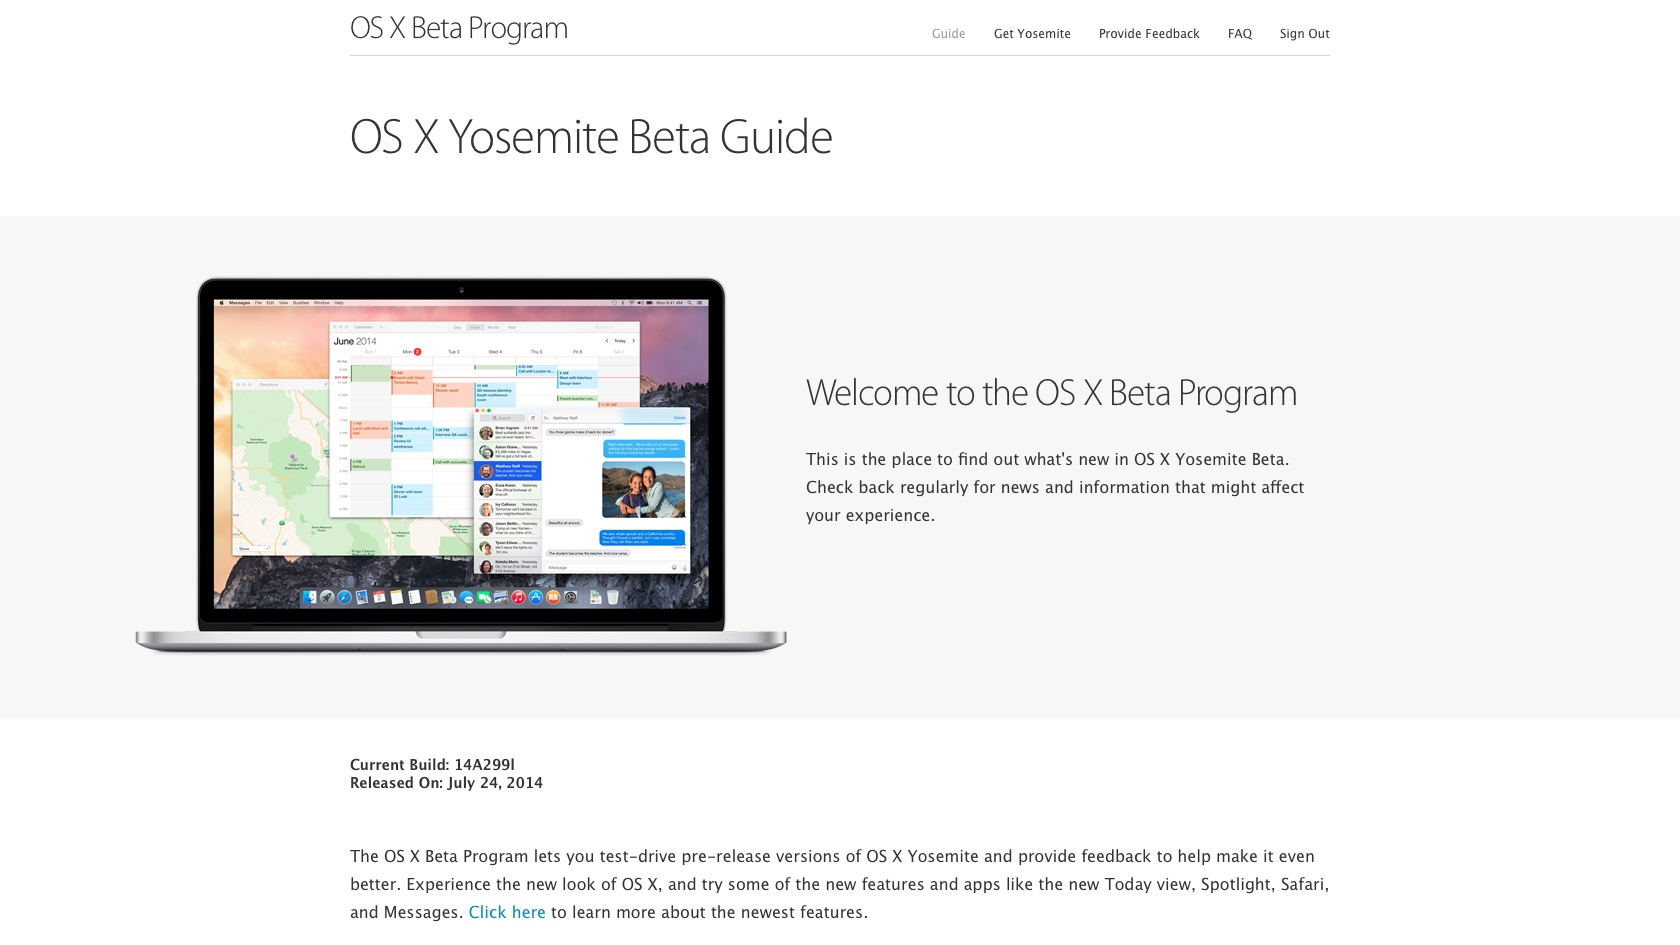 OS X Yosemite Beta Program Now Live